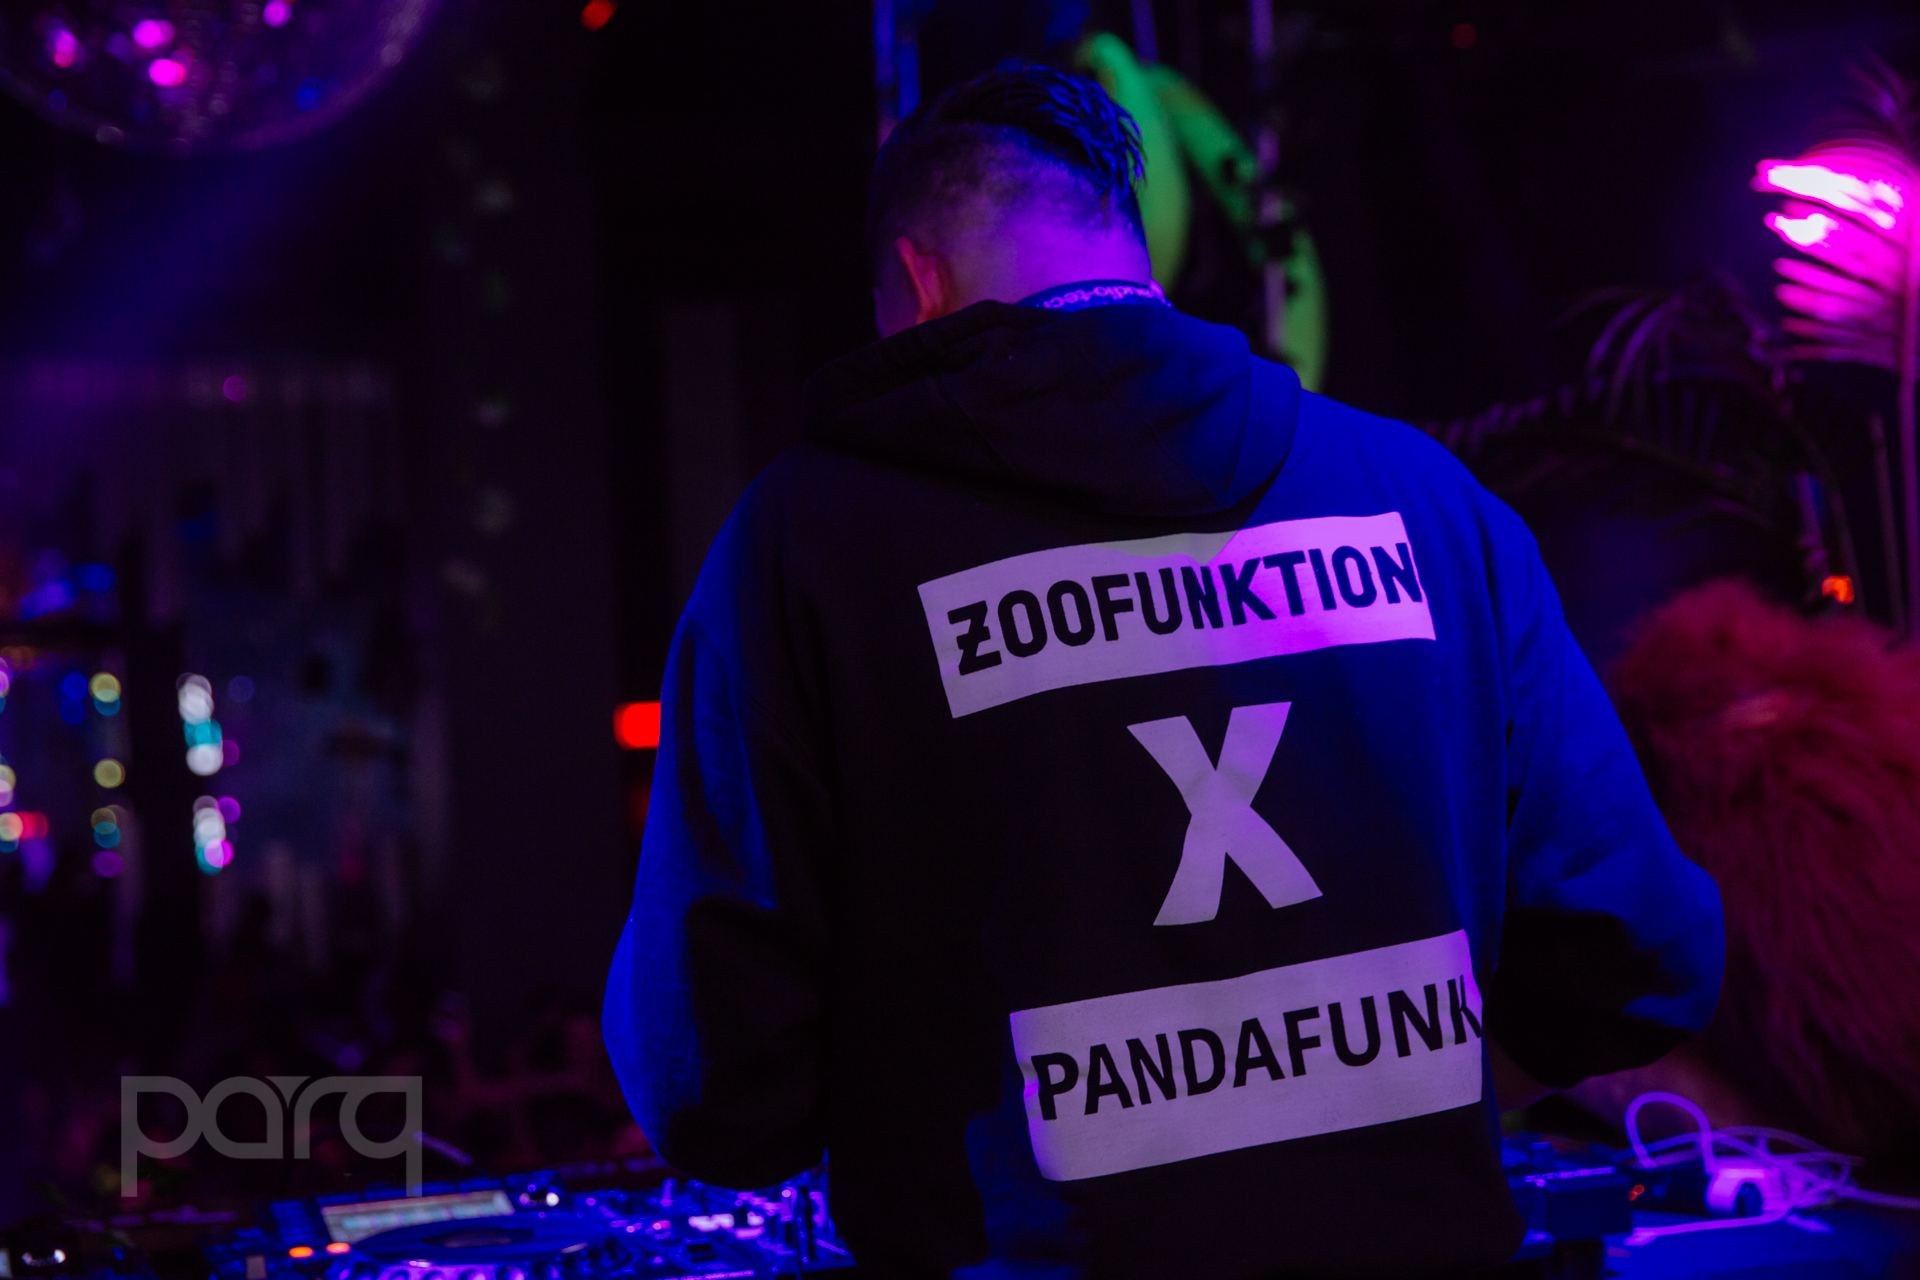 04.22.17 Zoo Funktion-45.jpg